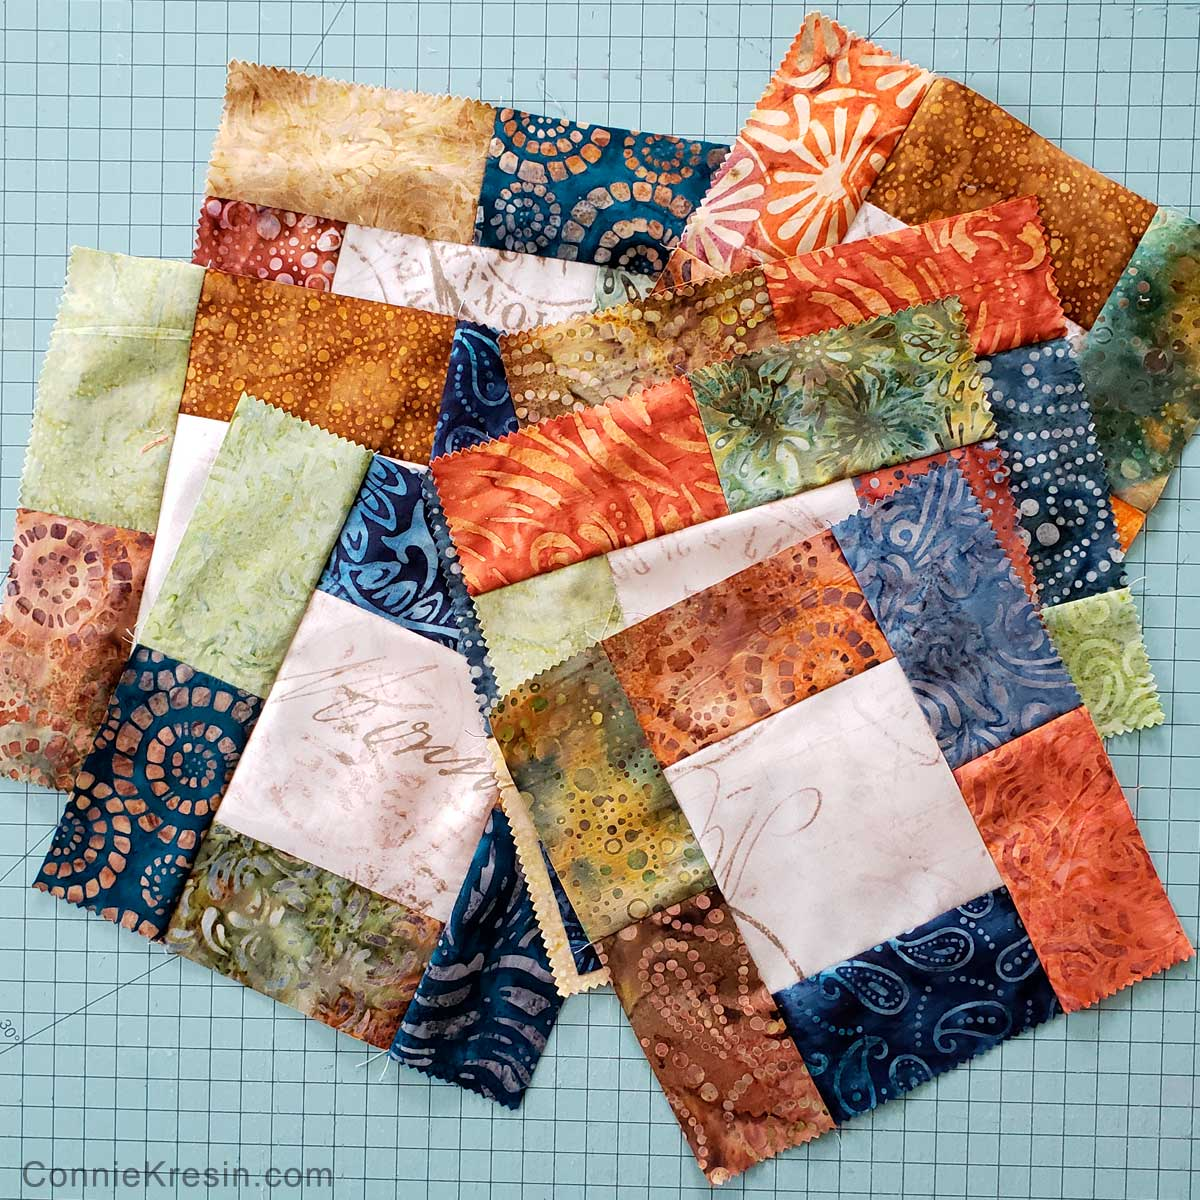 Finished quilt blocks